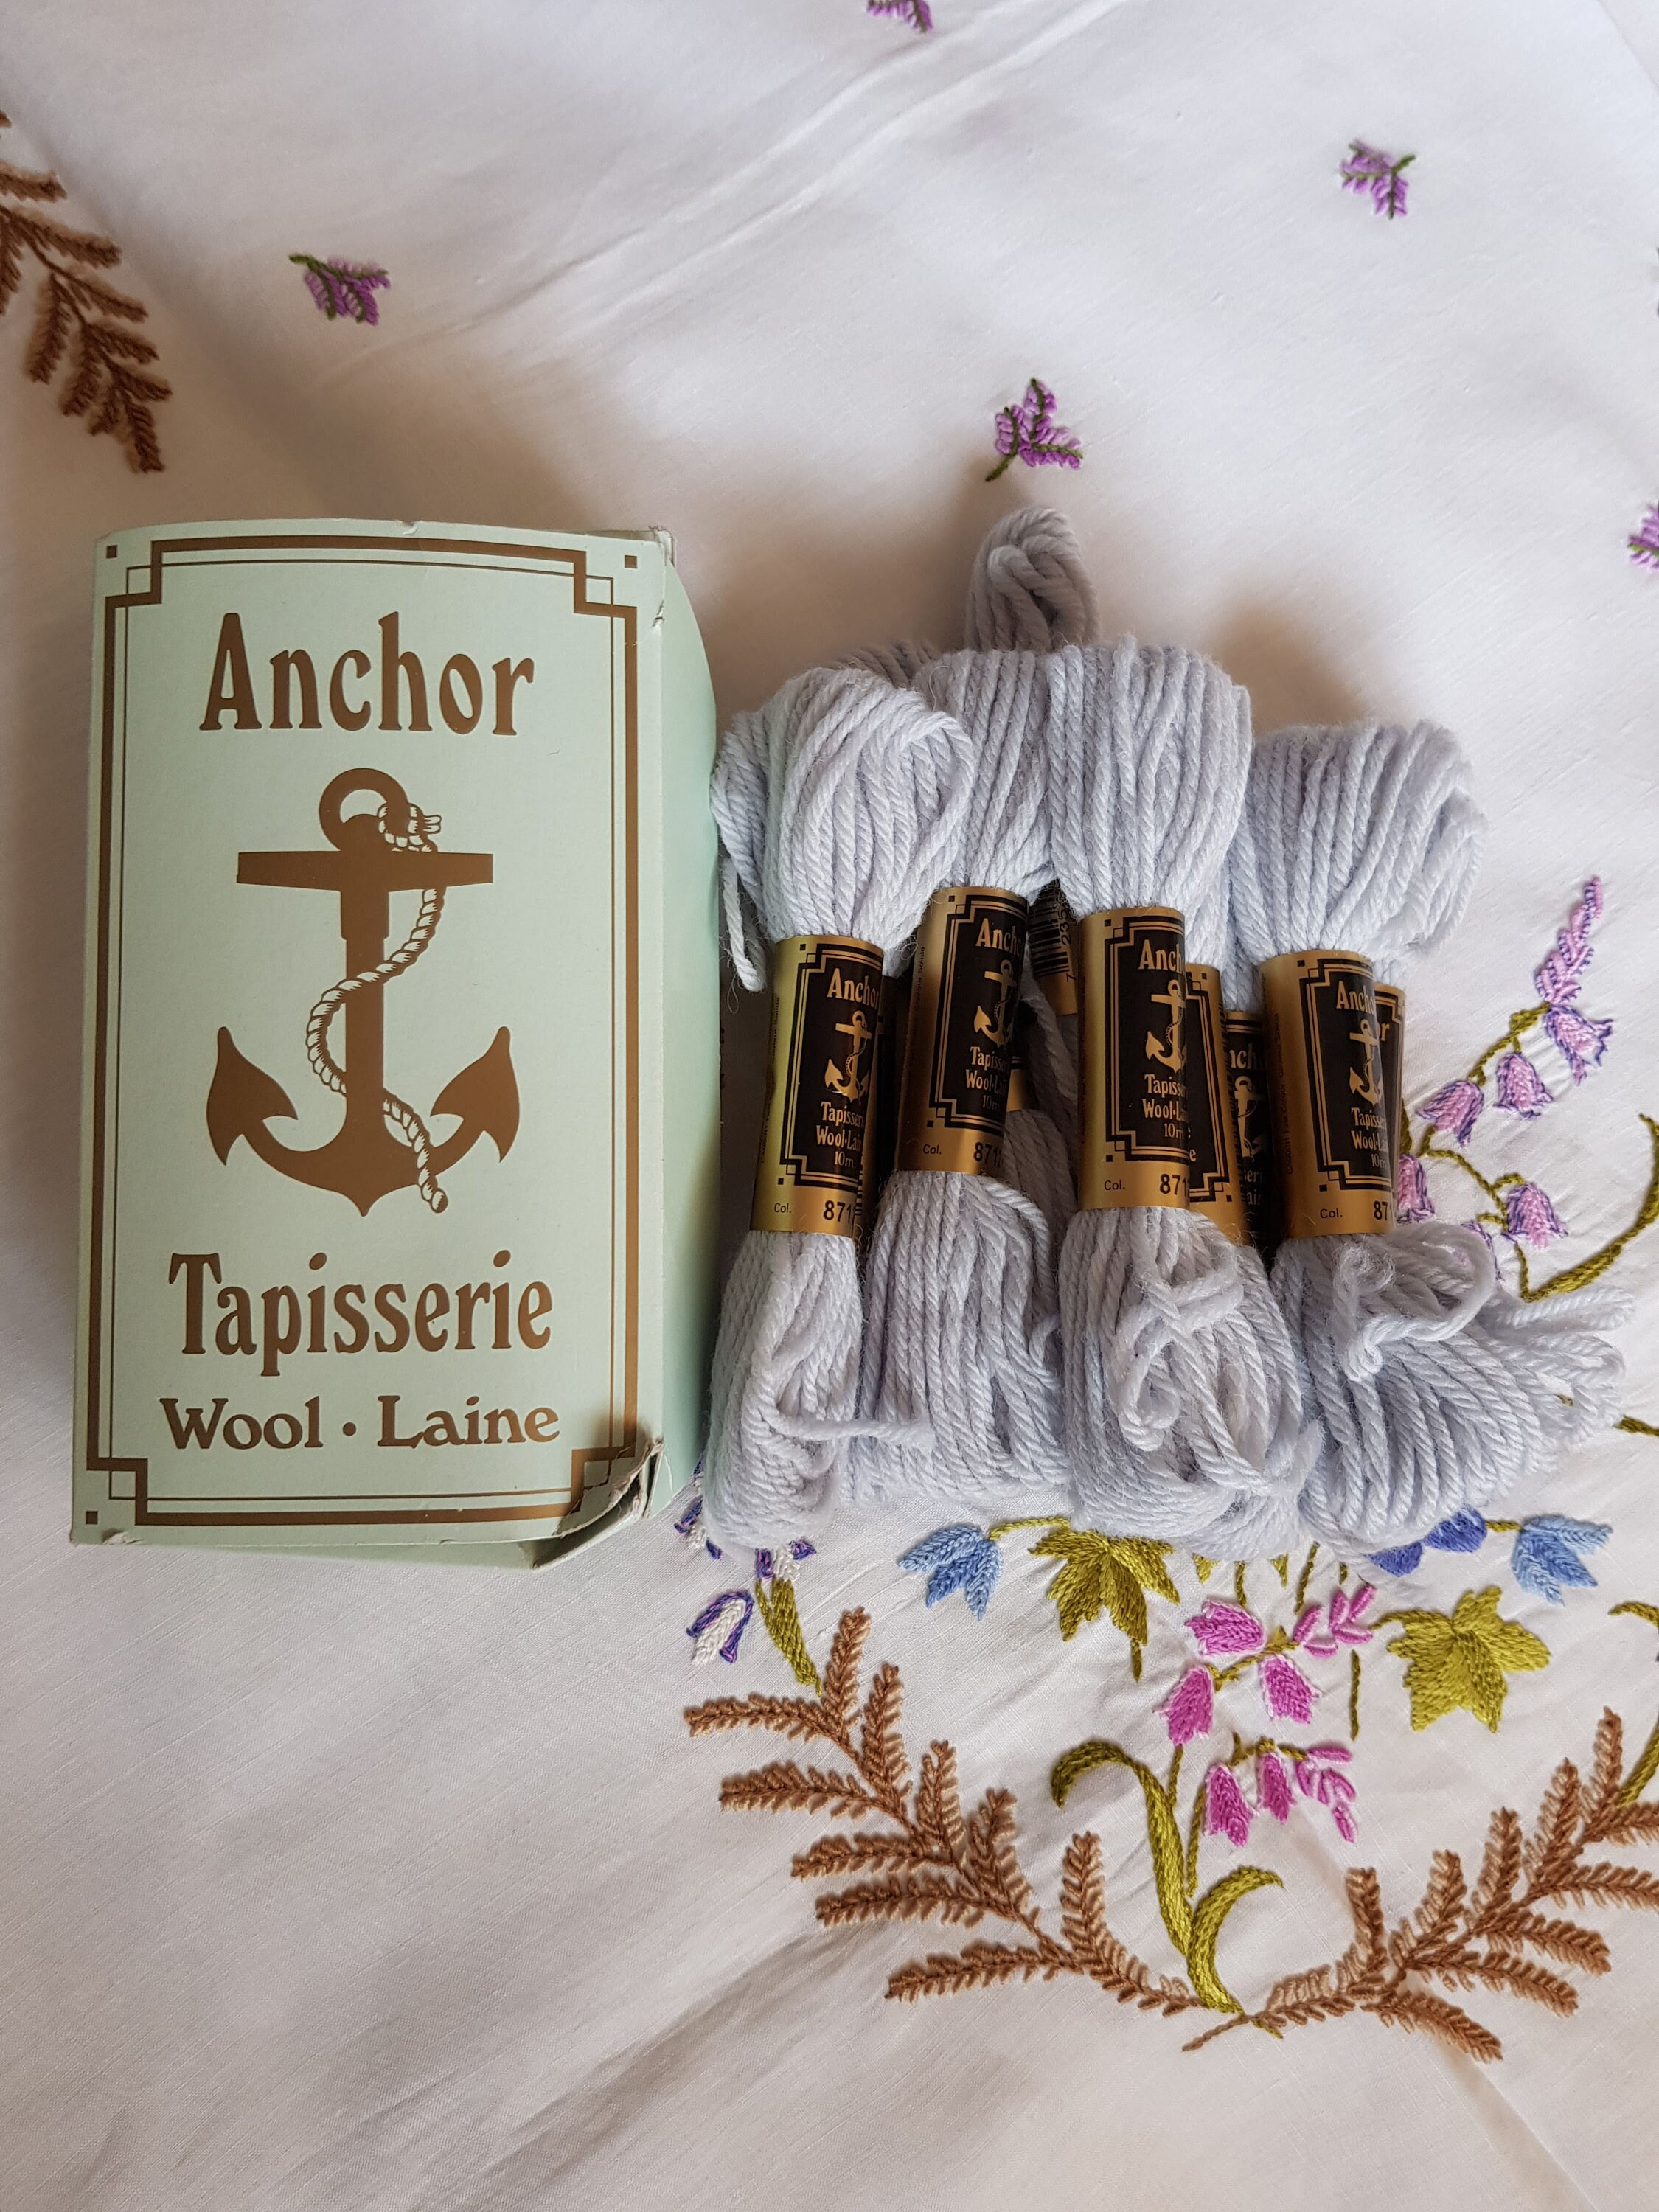 Tapisserie Om Anchor Tapestry Wool 10 Skeins Pale Grey Vintage Thread Sewing Supplies Crafts Needlework Needle Craft Yarn Tapisserie Wool